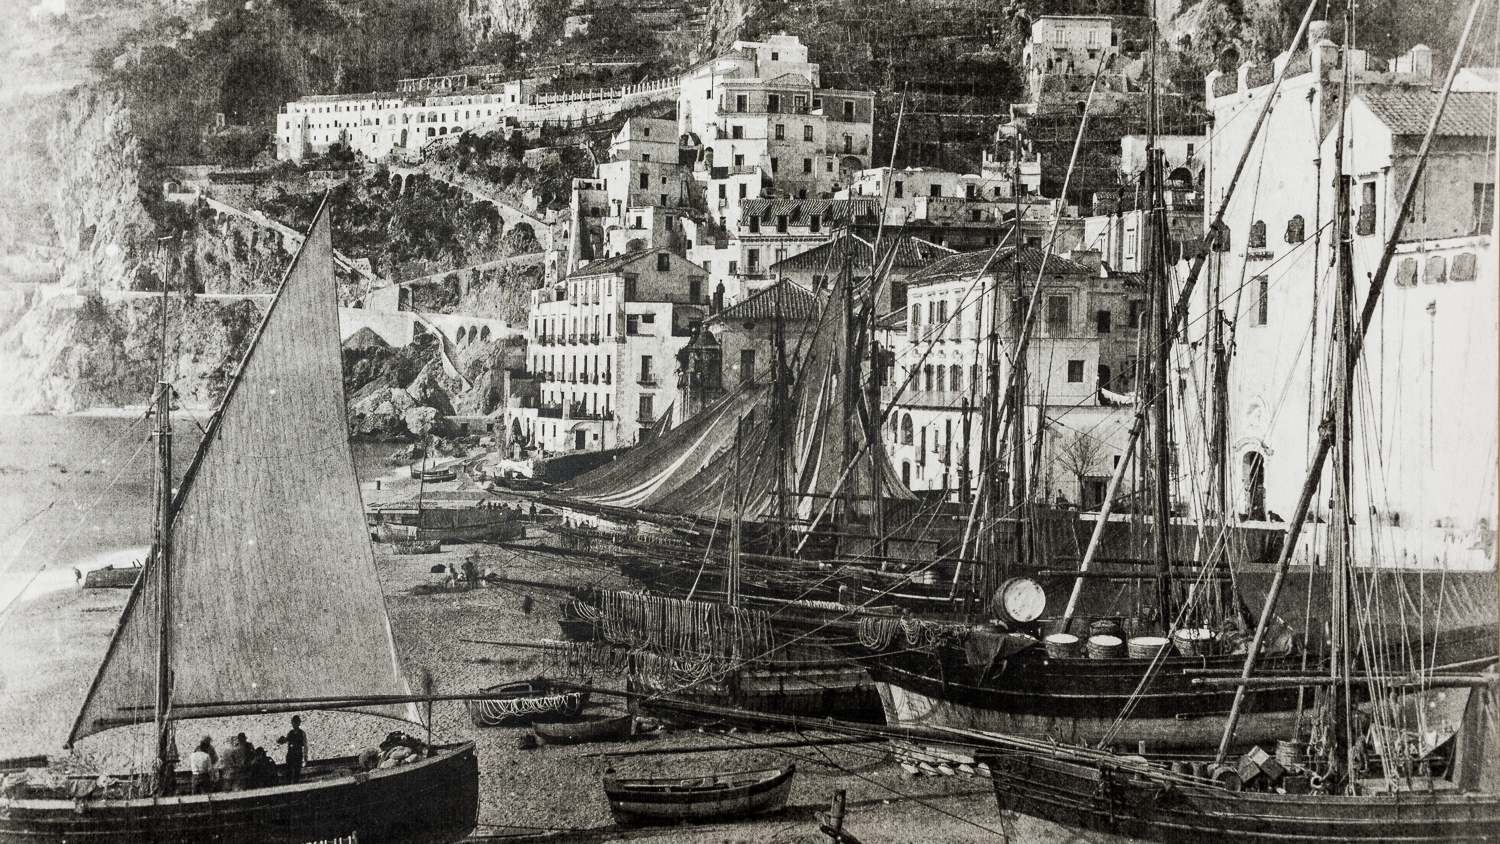 Old photo of the town of Amalfi